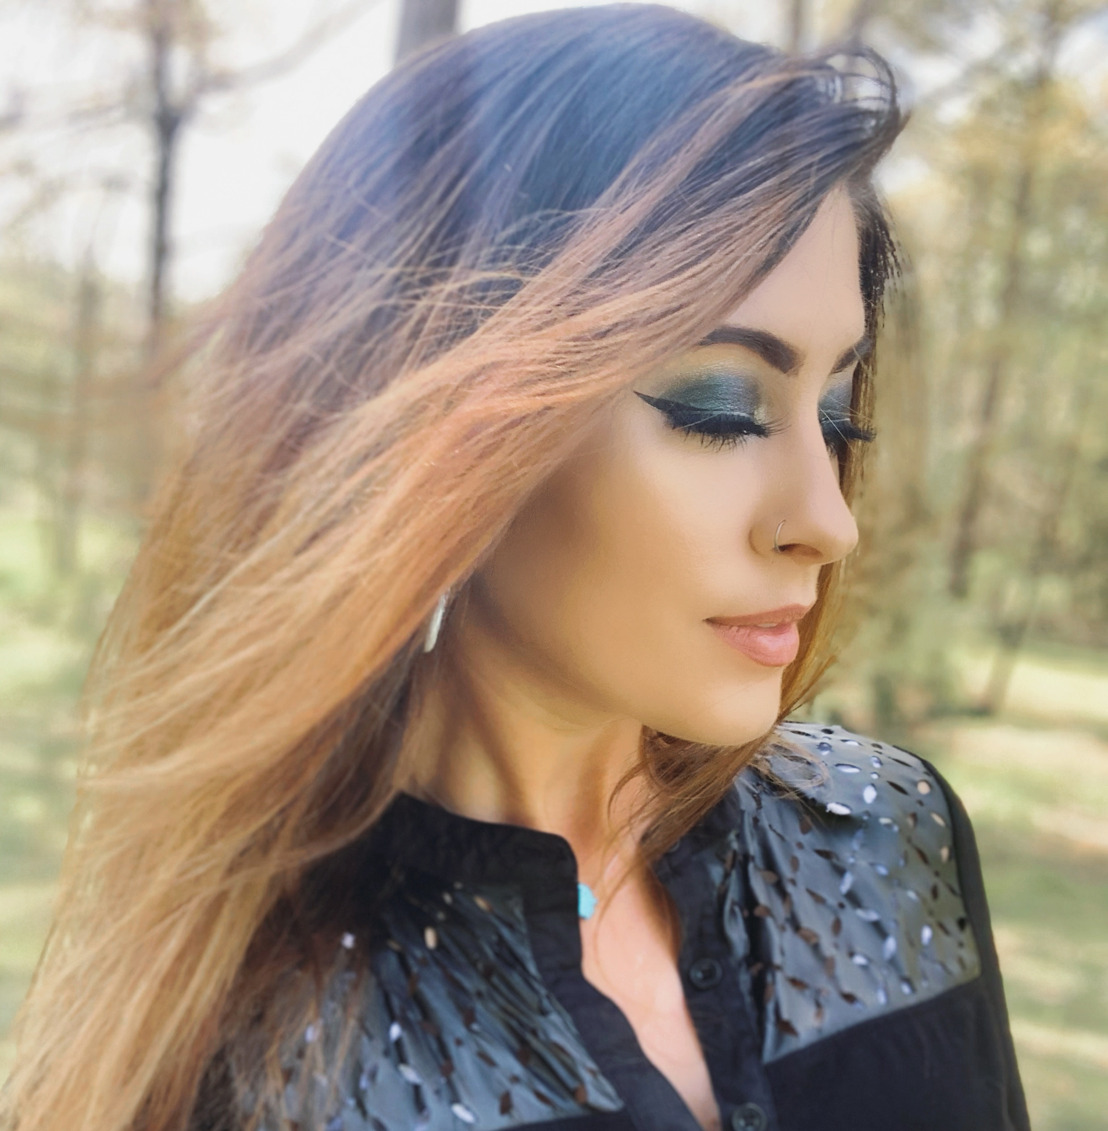 Sweetwater Studios Announces Recording Workshop with American Idol Finalist Jessica Meuse